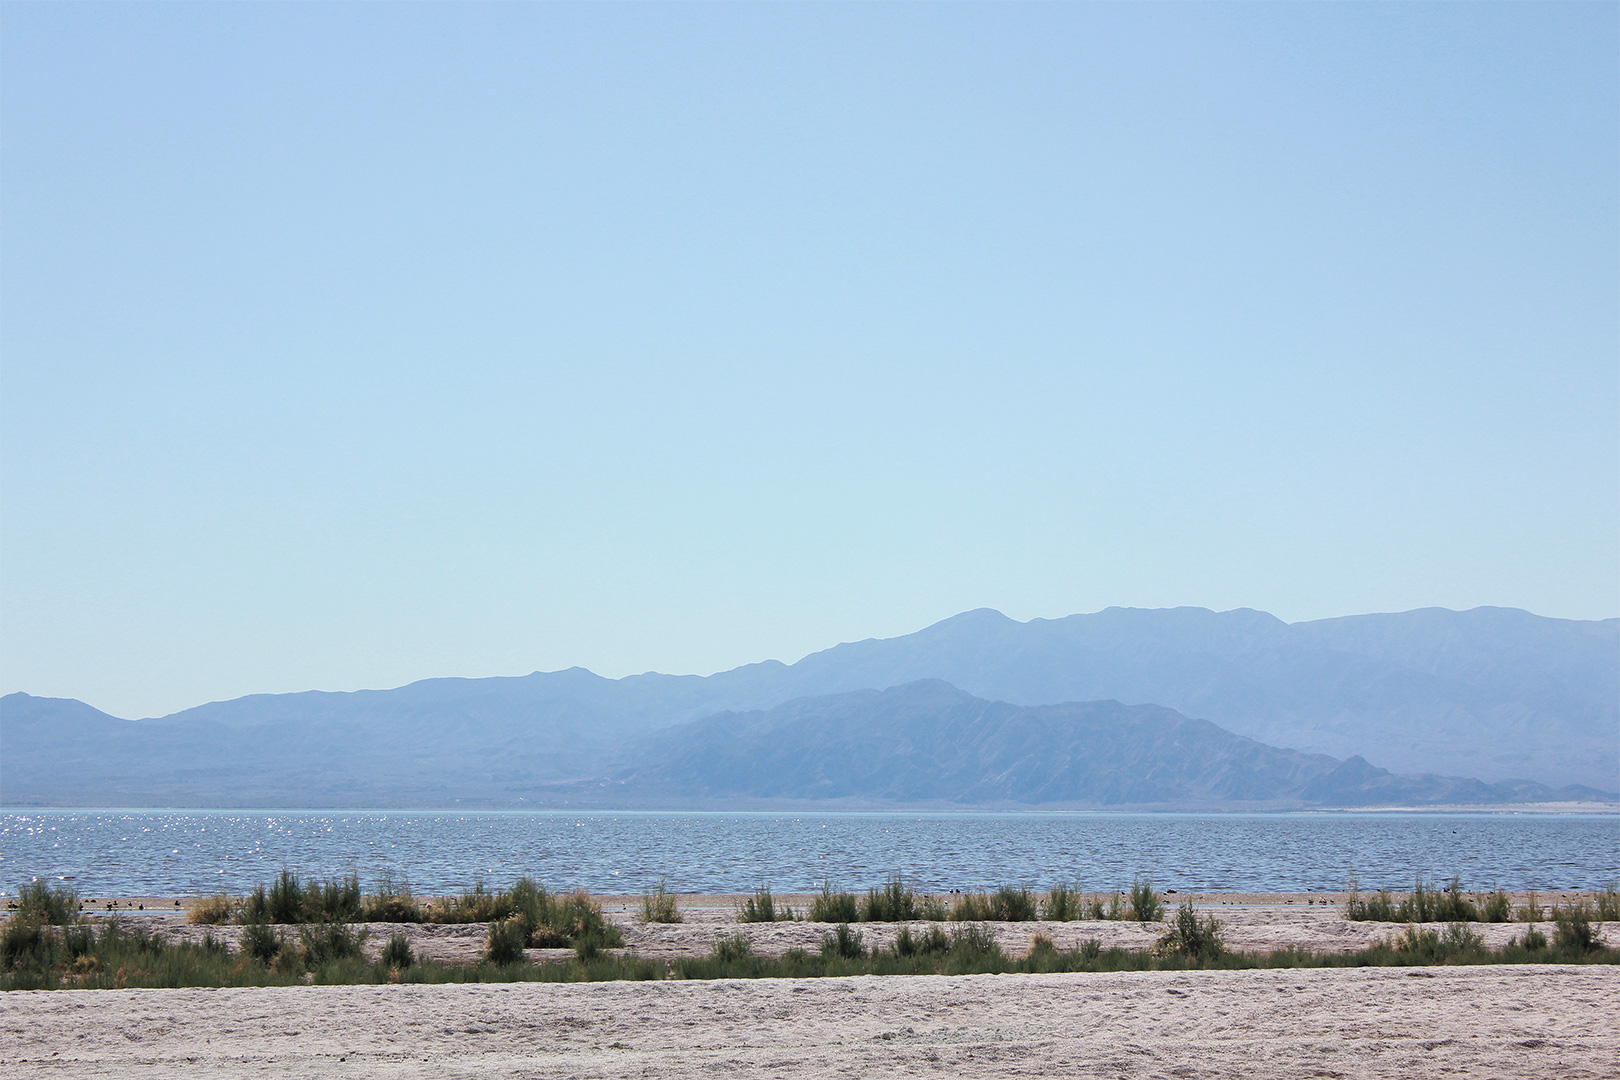 The Salton Sea on our way back up to Los Angeles